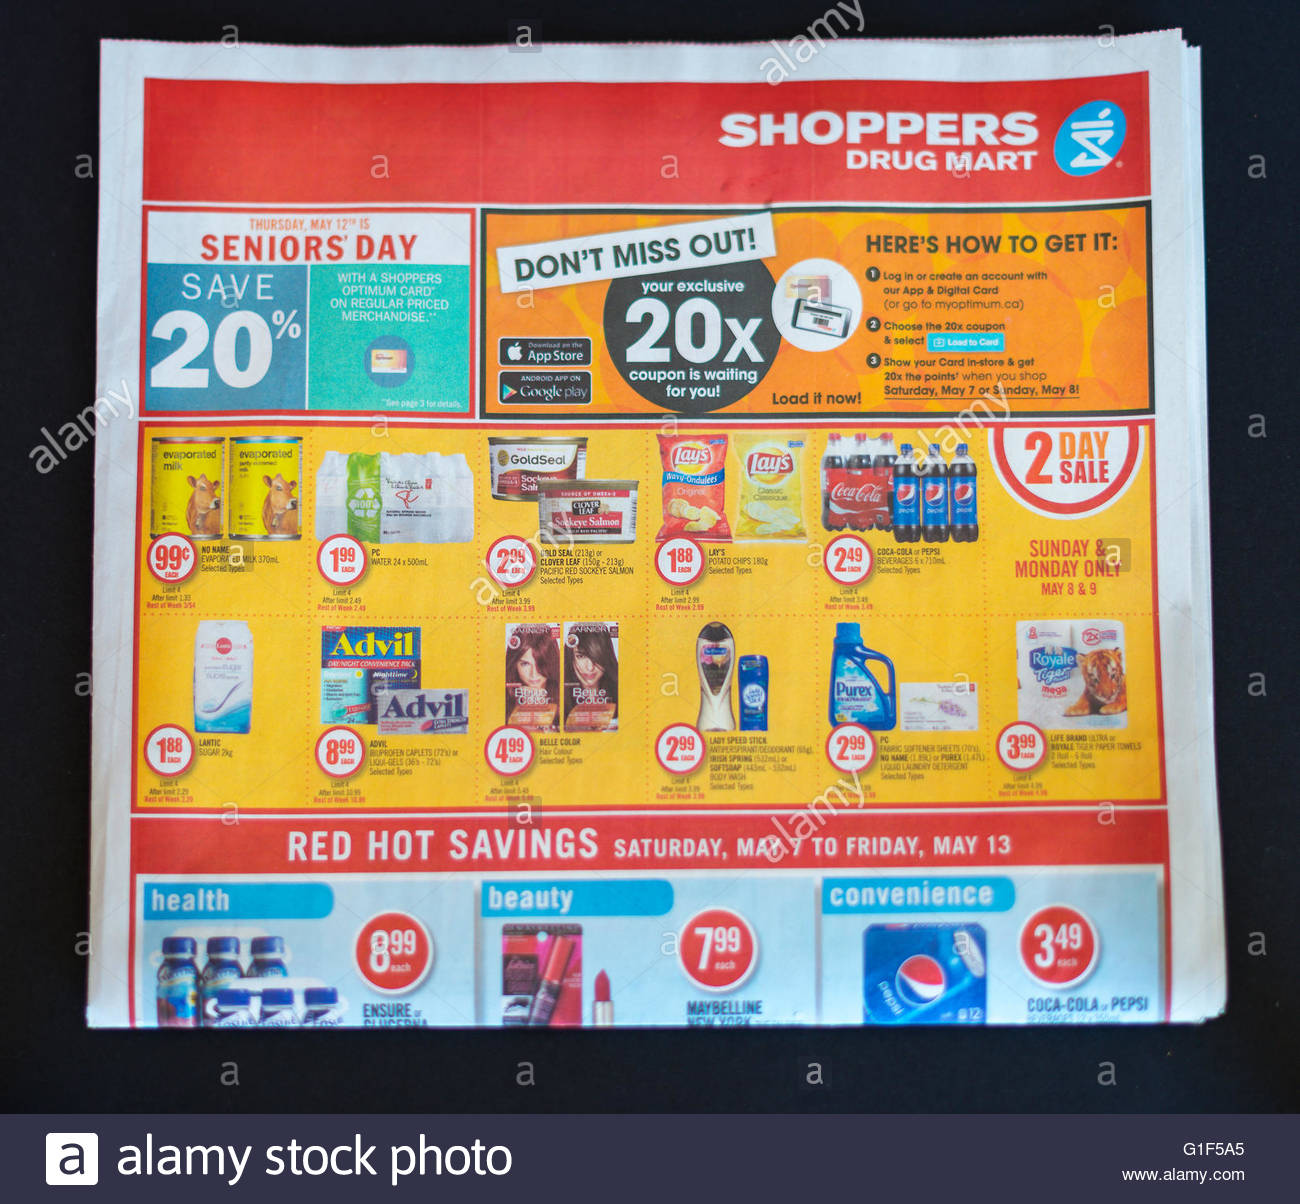 Shoppers Drug Mart flyer The flyer culture: commercial